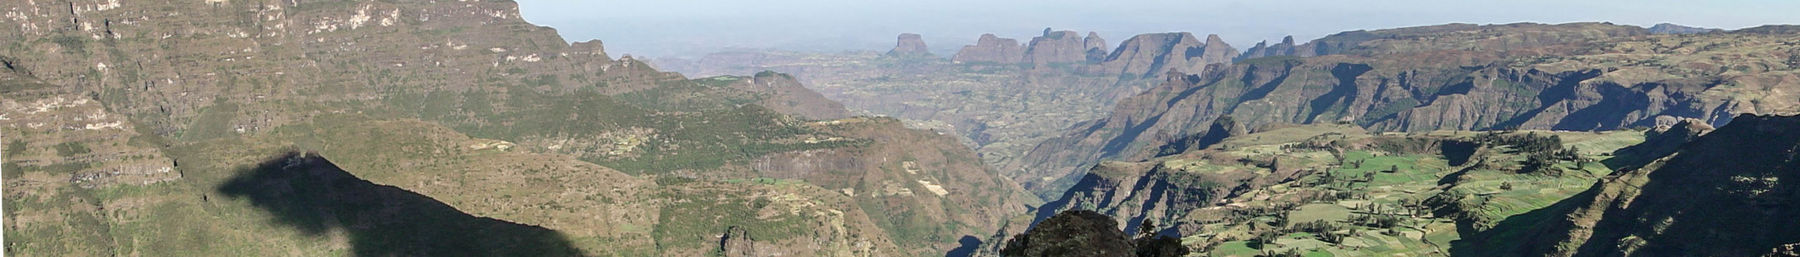 Simien Mountains National Park banner.jpg